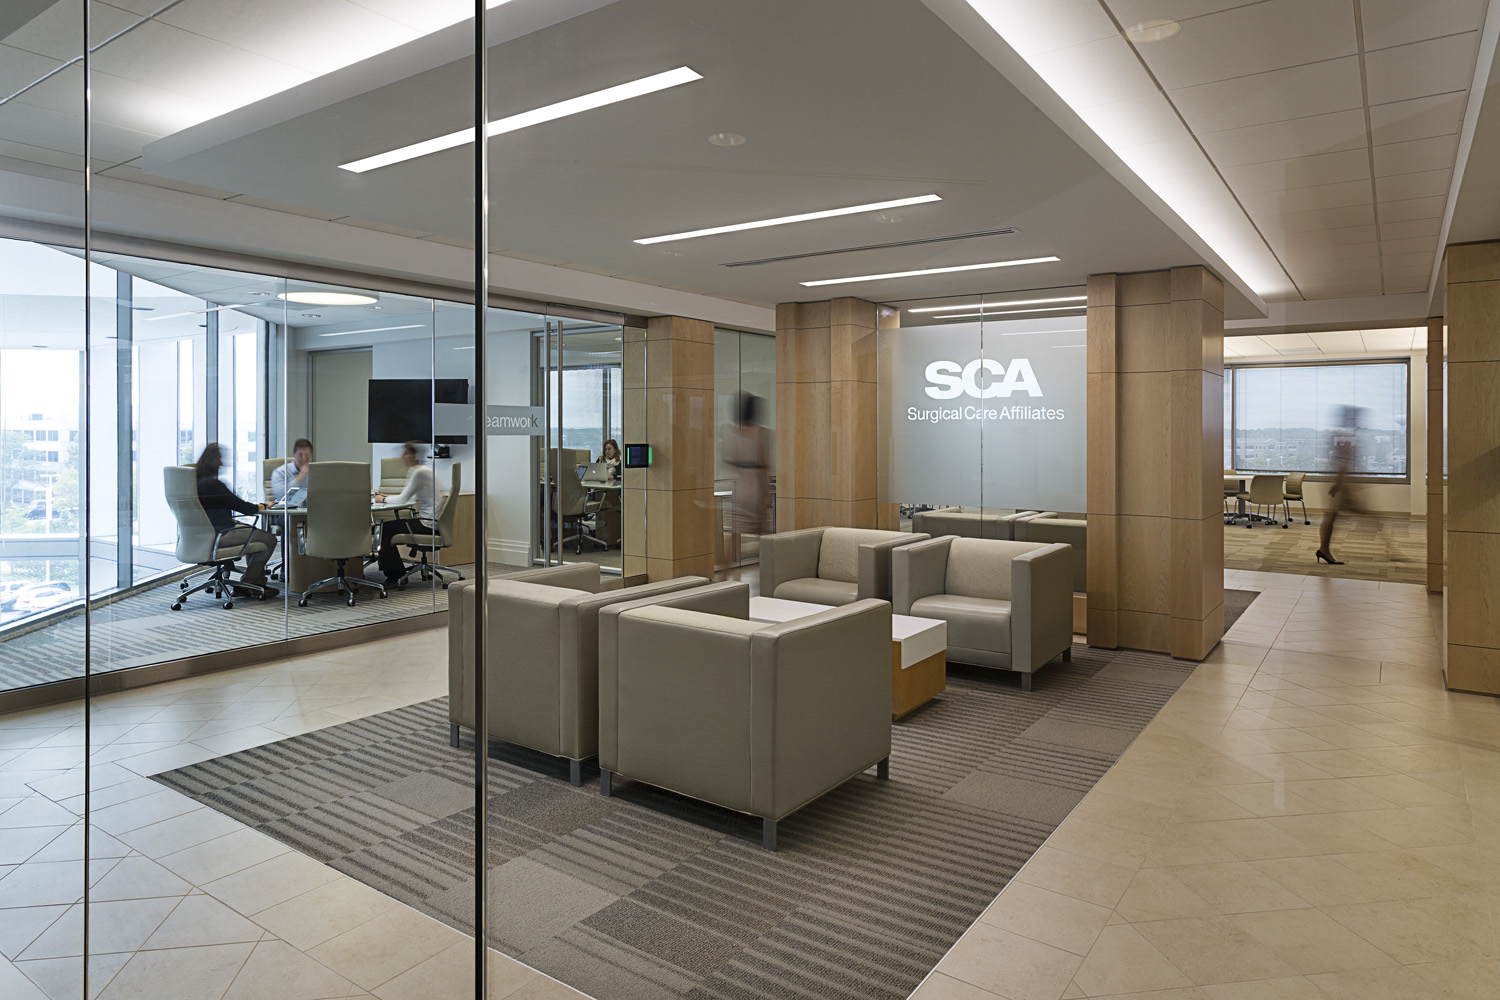 Surgical Care Affiliates / Deerfield IL / William Blackstock Architects